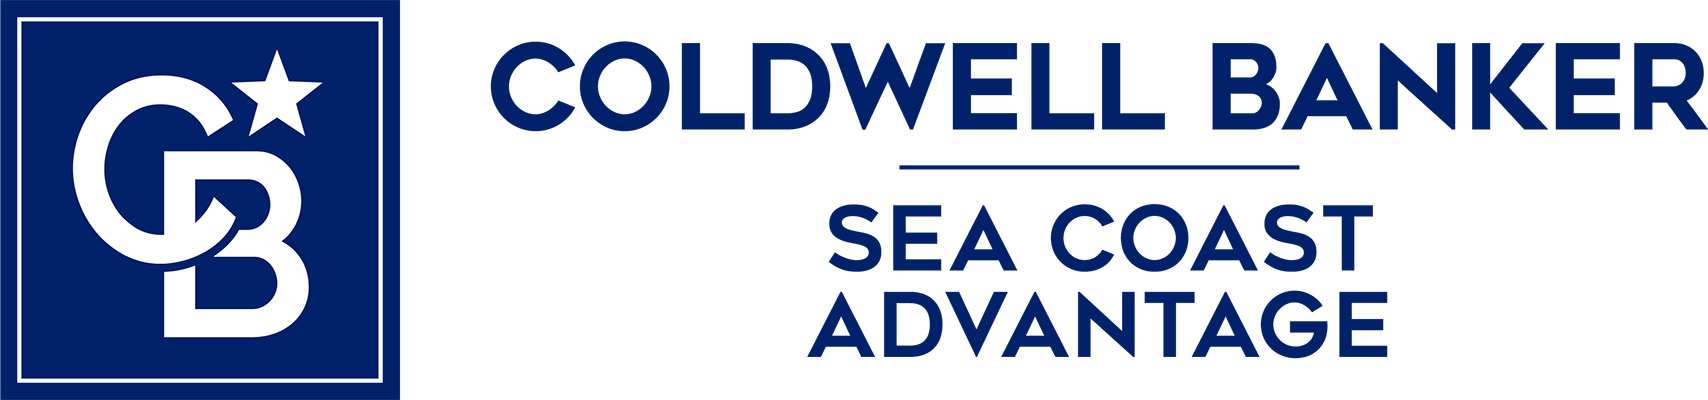 Paul Hope - Coldwell Banker Sea Coast Advantage Realty